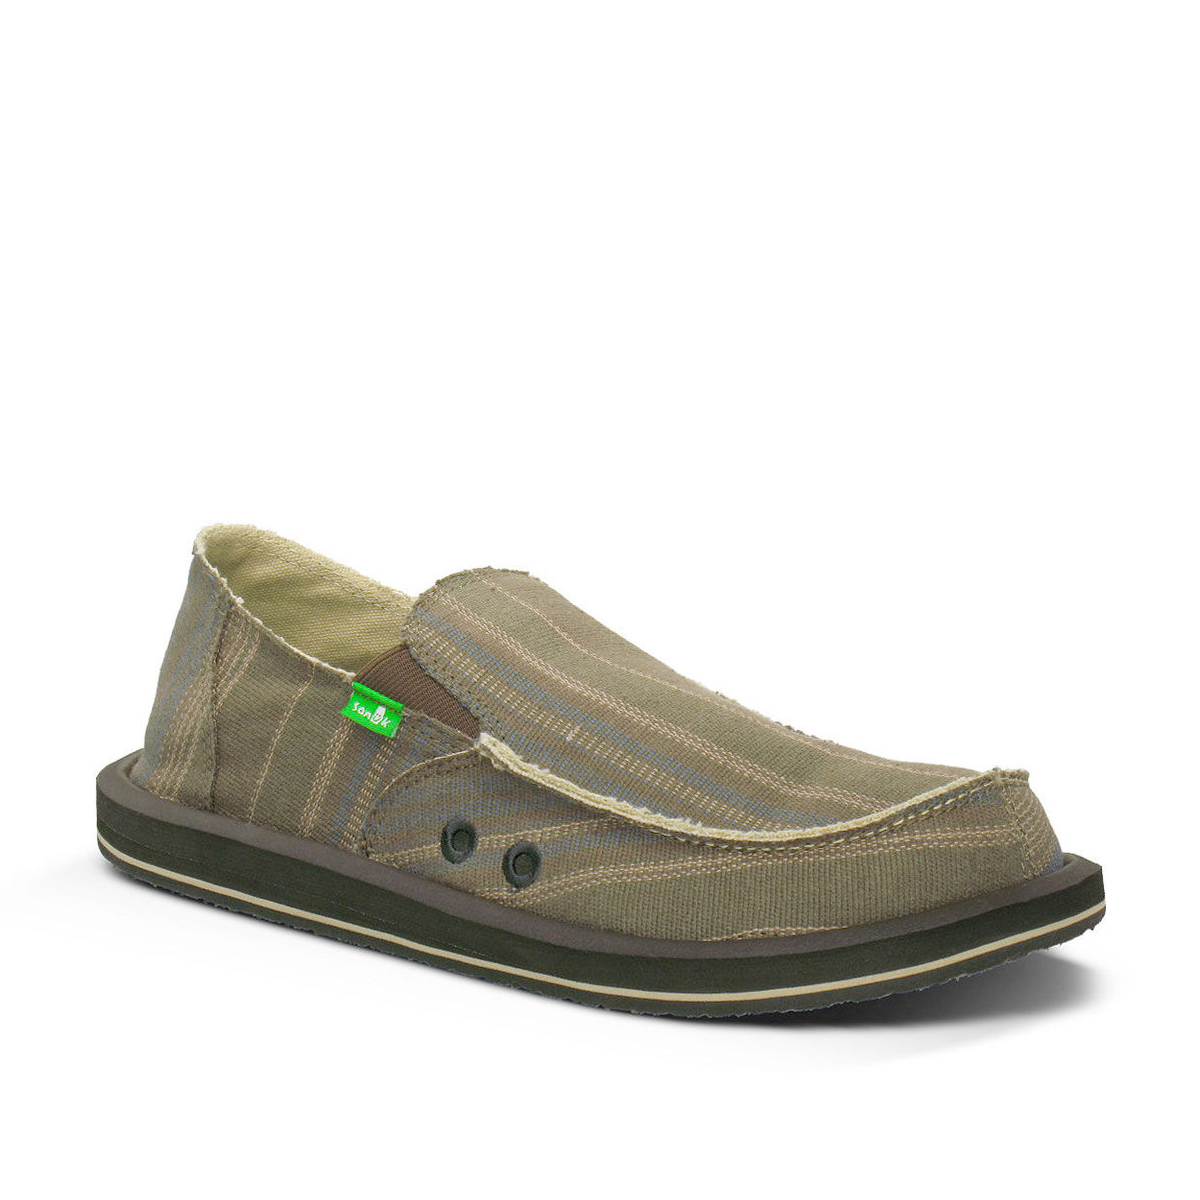 Sanuk-Donny-Sandals-Sidewalk-Surfers